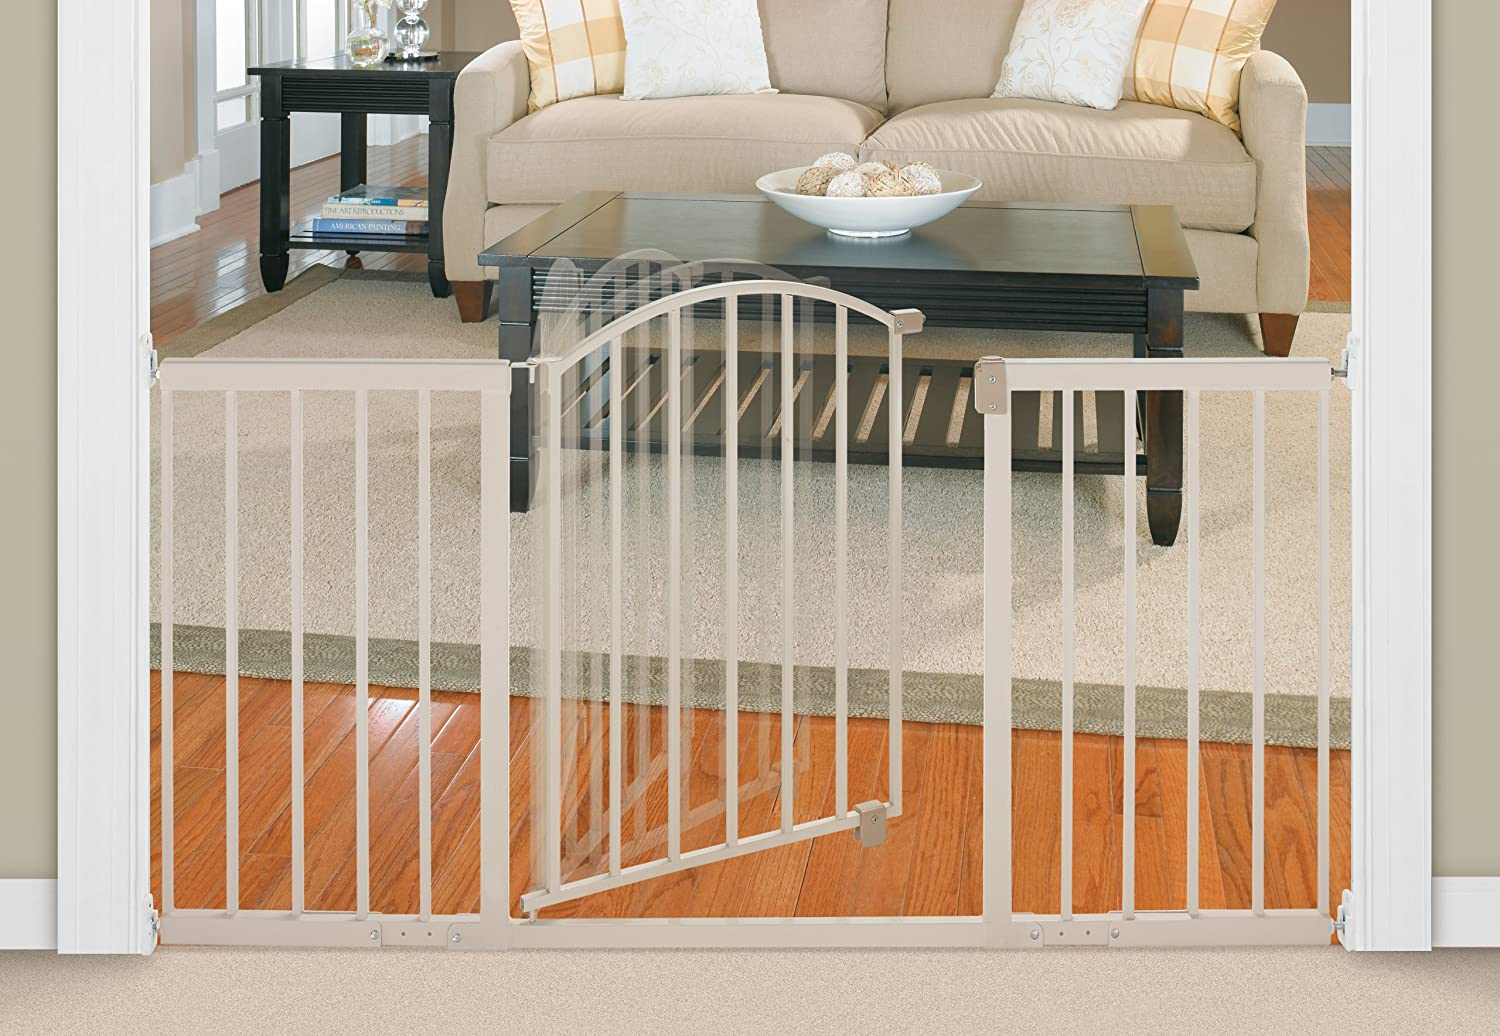 Superbe Amazon.com : Summer Infant Metal Expansion Gate, 6 Foot Wide Walk Thru,  Neutral Finish : Indoor Safety Gates : Baby